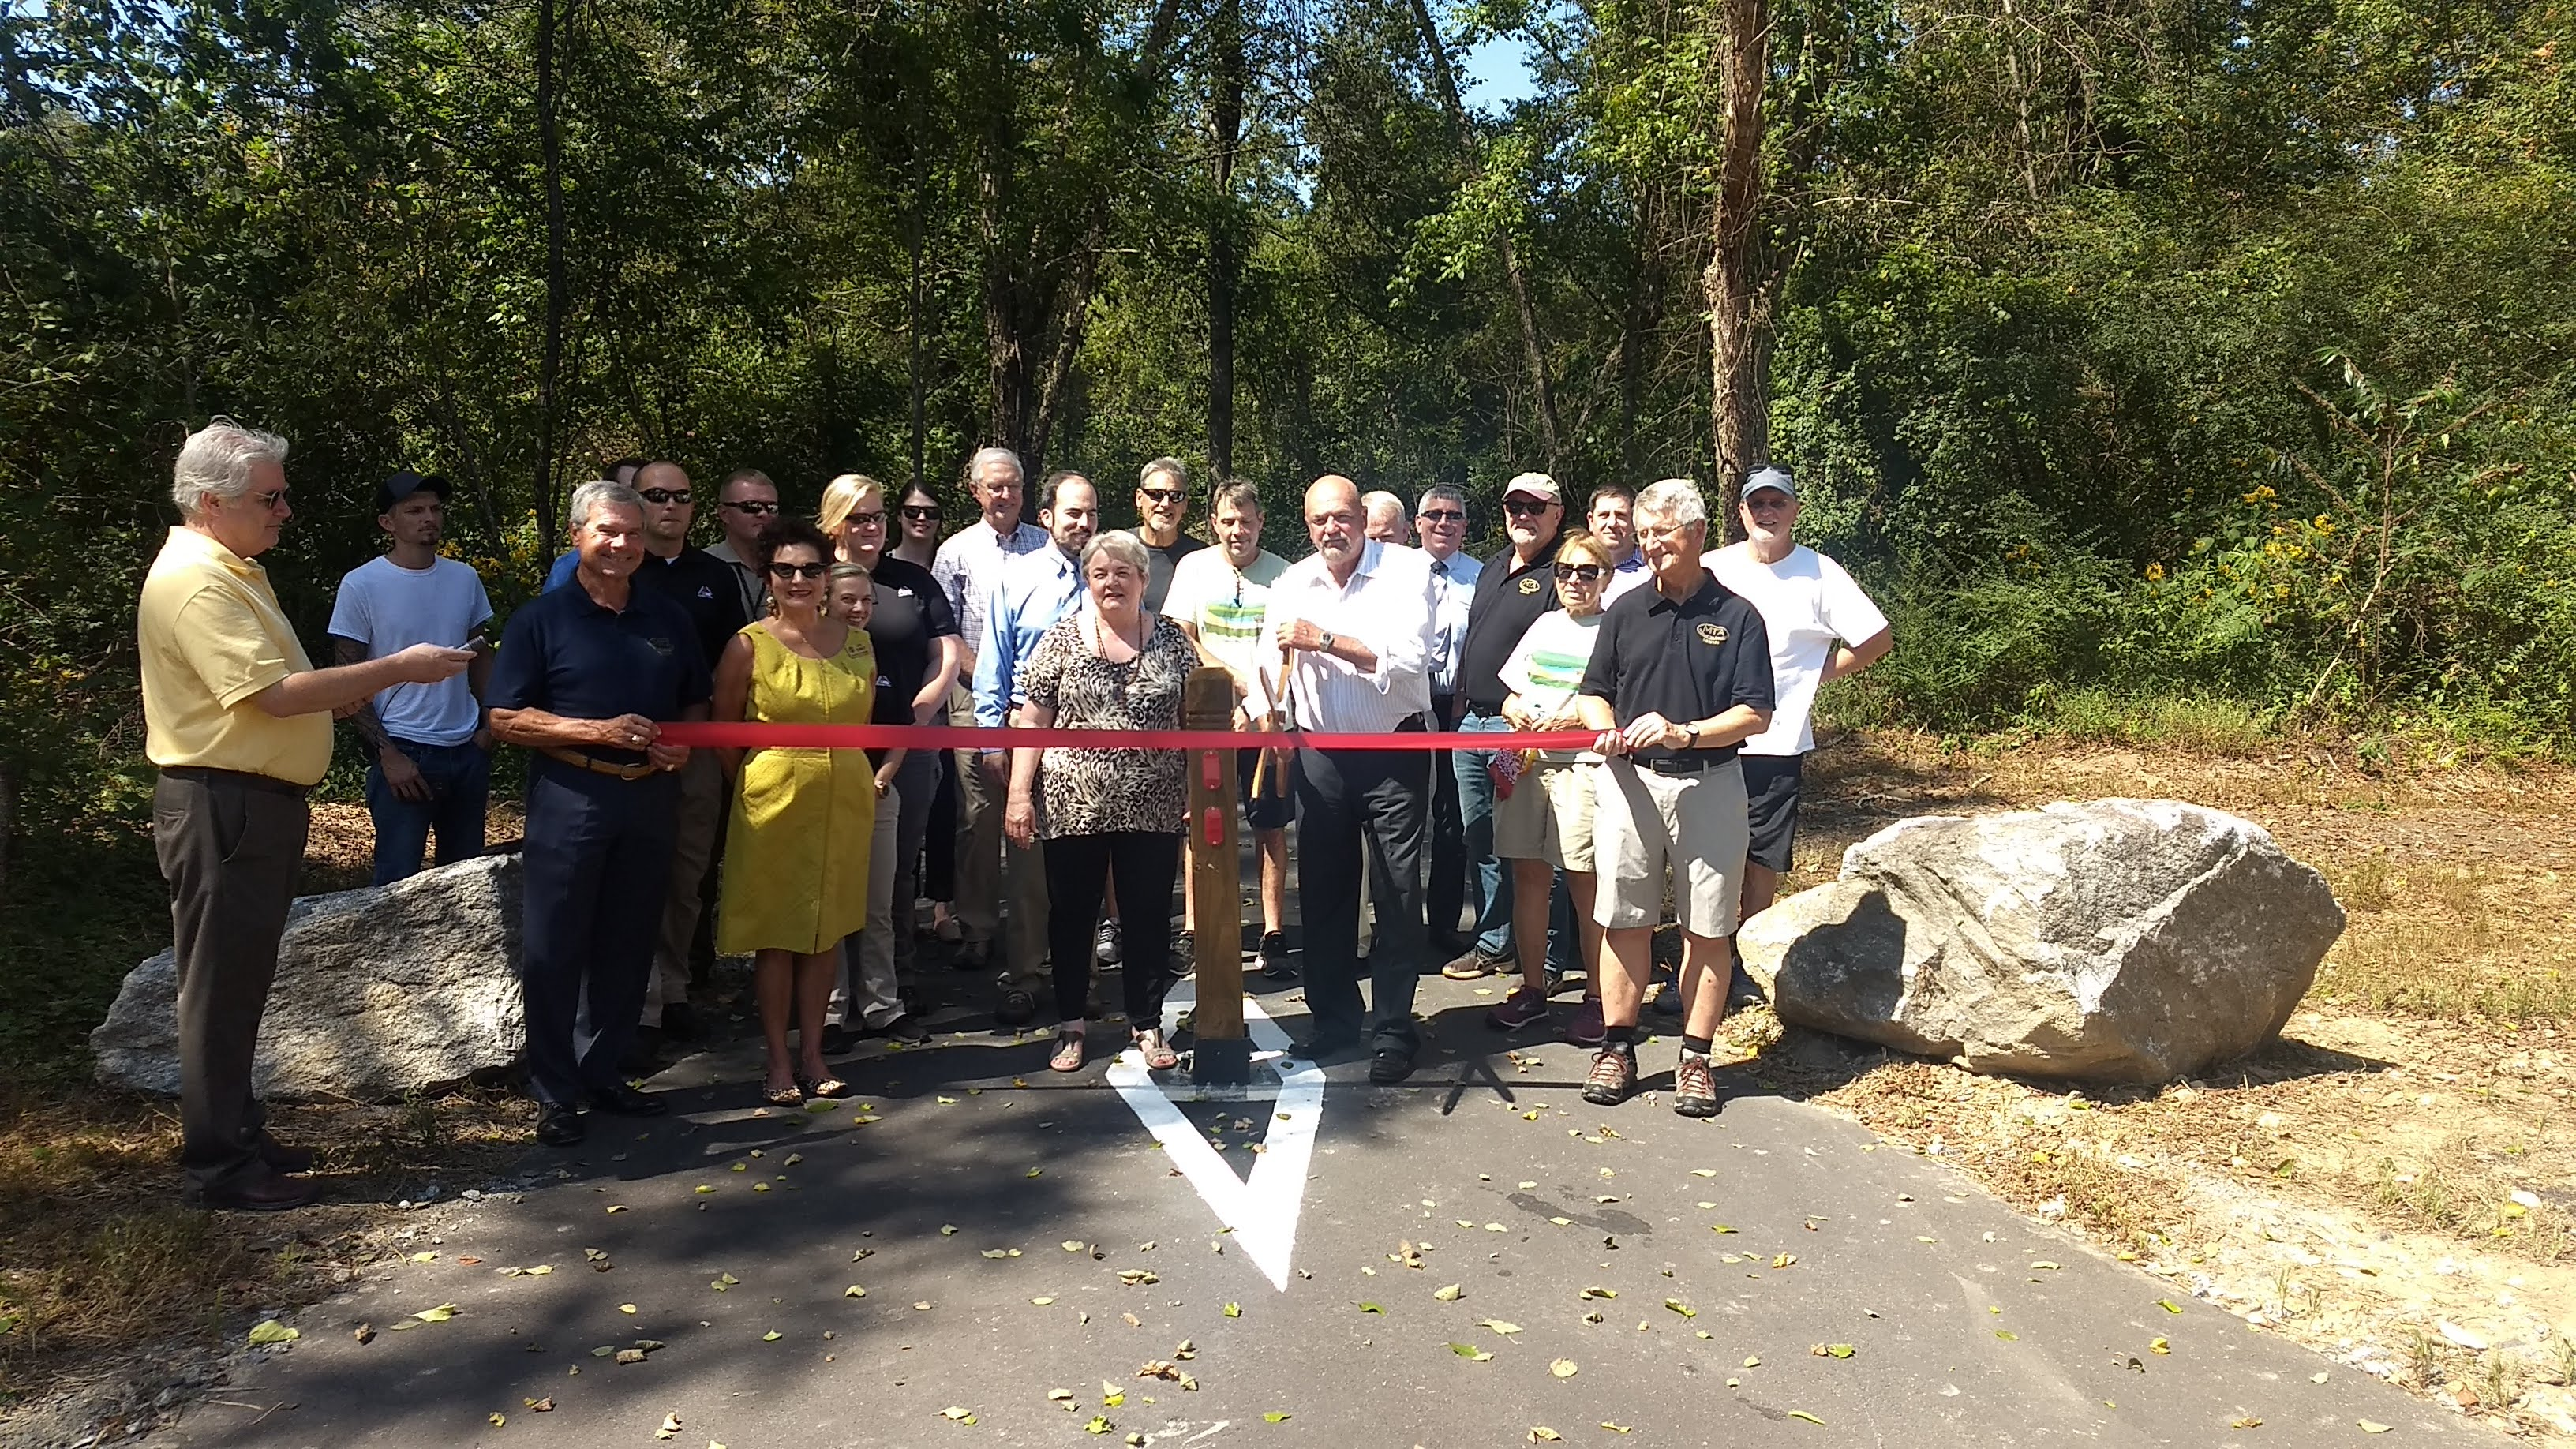 Ribbon Cutting for Phase III of the Greenlee Park/Fonta Flora State Trail System McDowell North Carolina